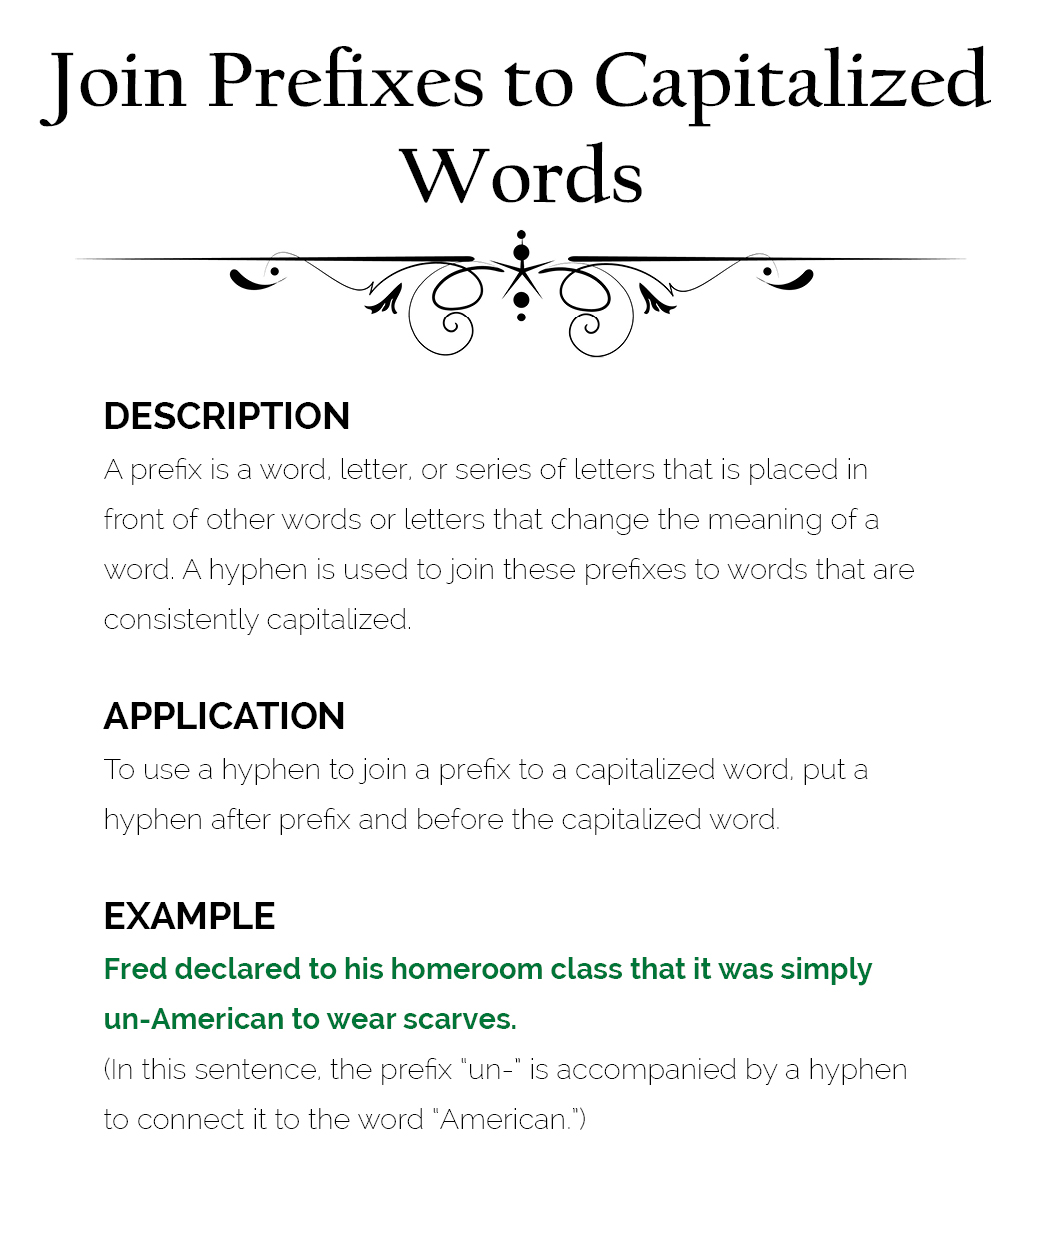 hyphen-use-4-joins-prefixes-to-capitalized-words